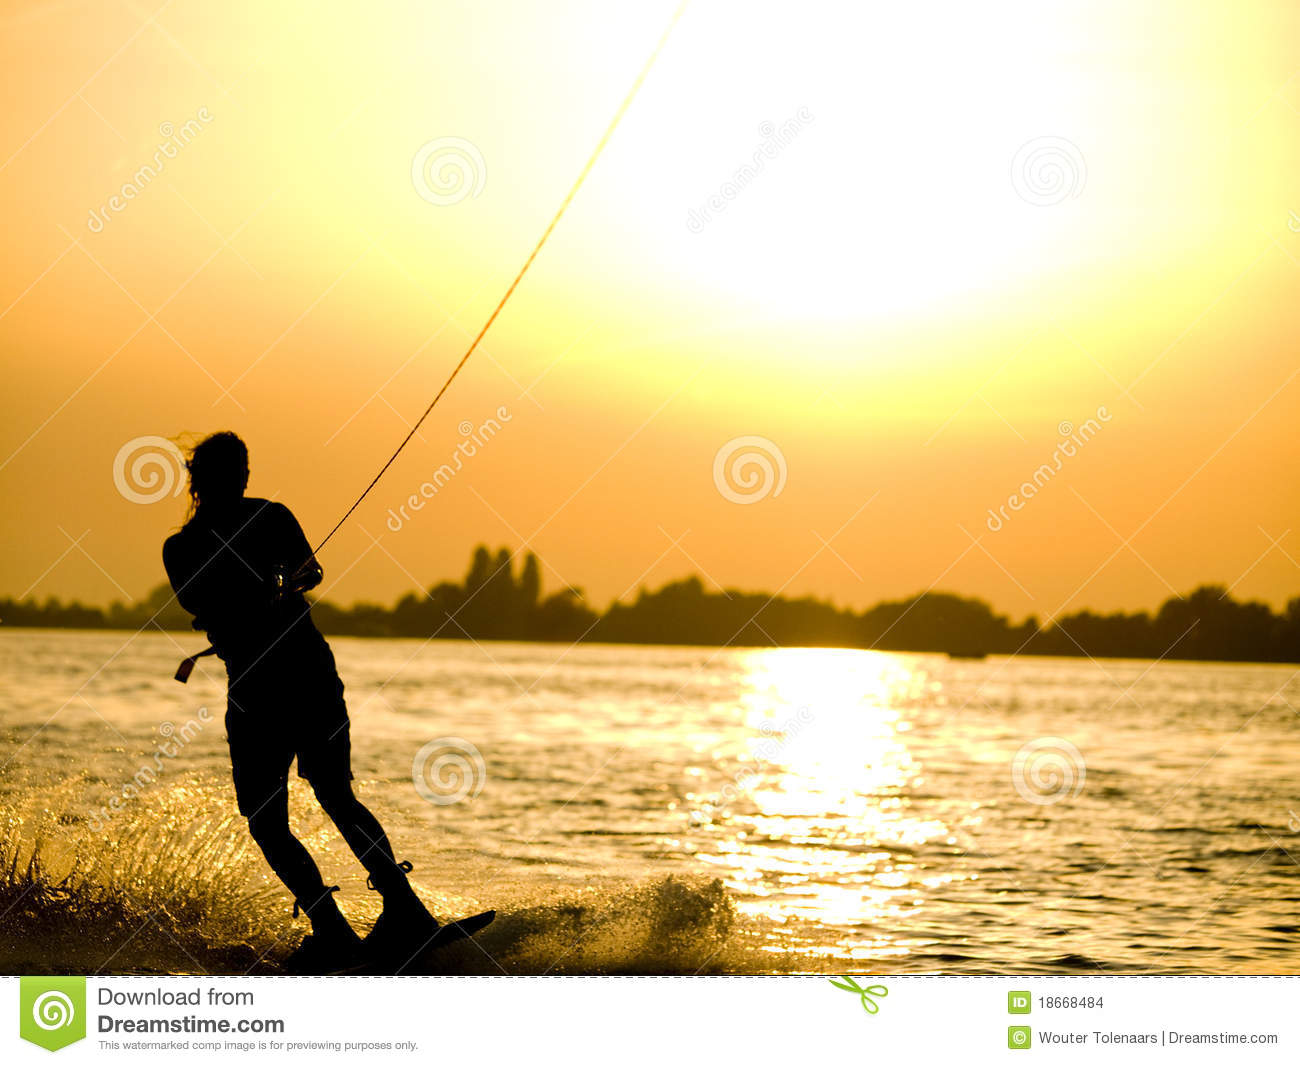 Girl is wakeboarding on a lake during a beautiful sunset.